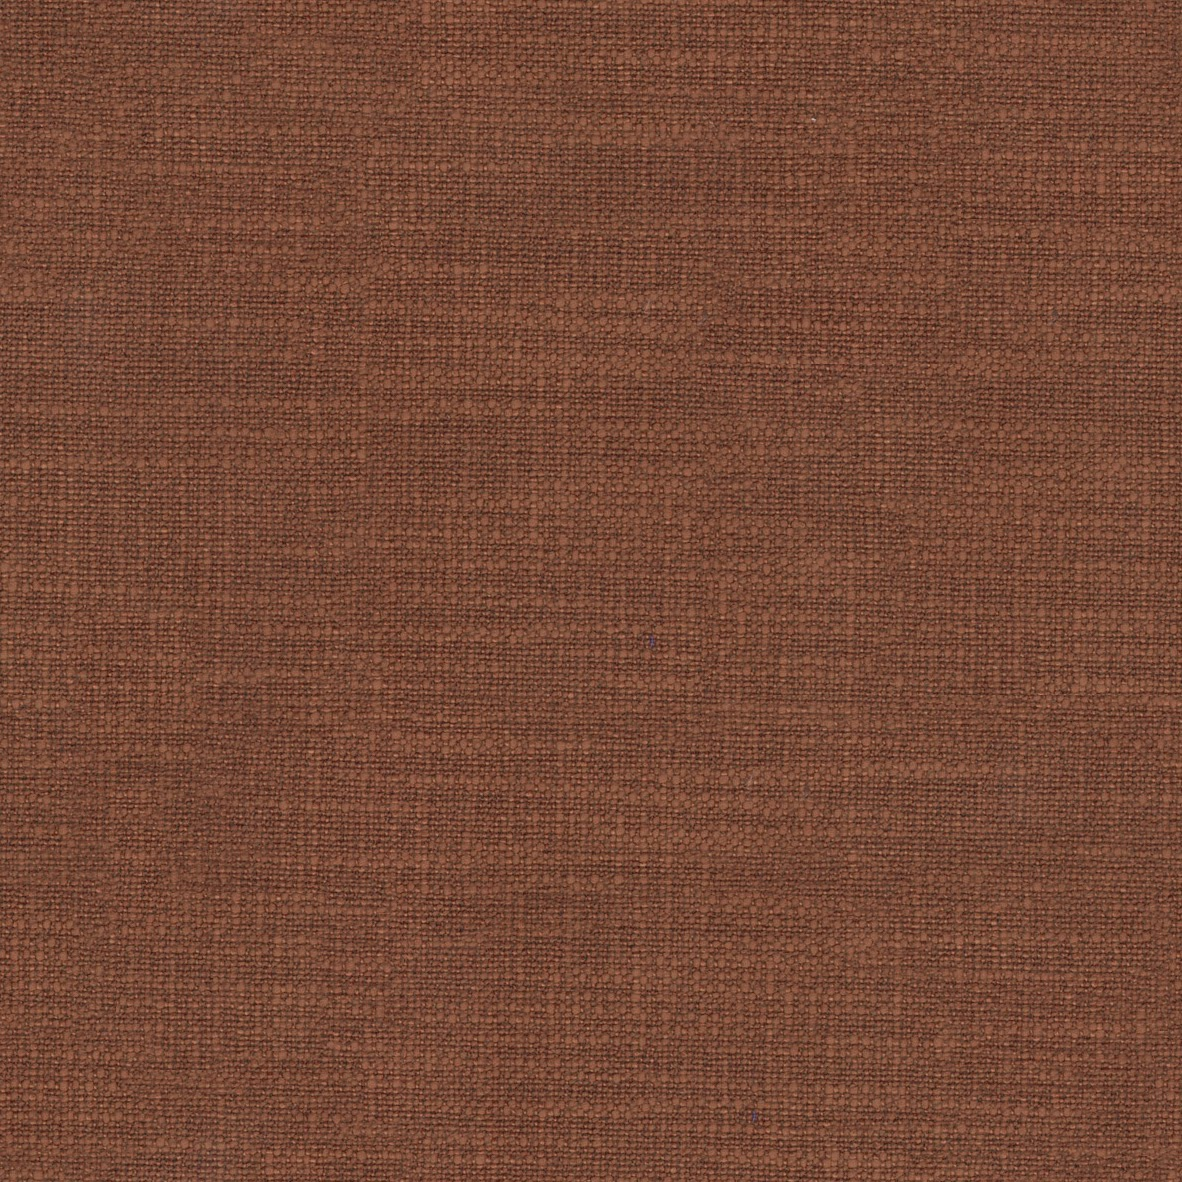 Seamless Brown Fabric Texture + (Maps) | Texturise Free ...